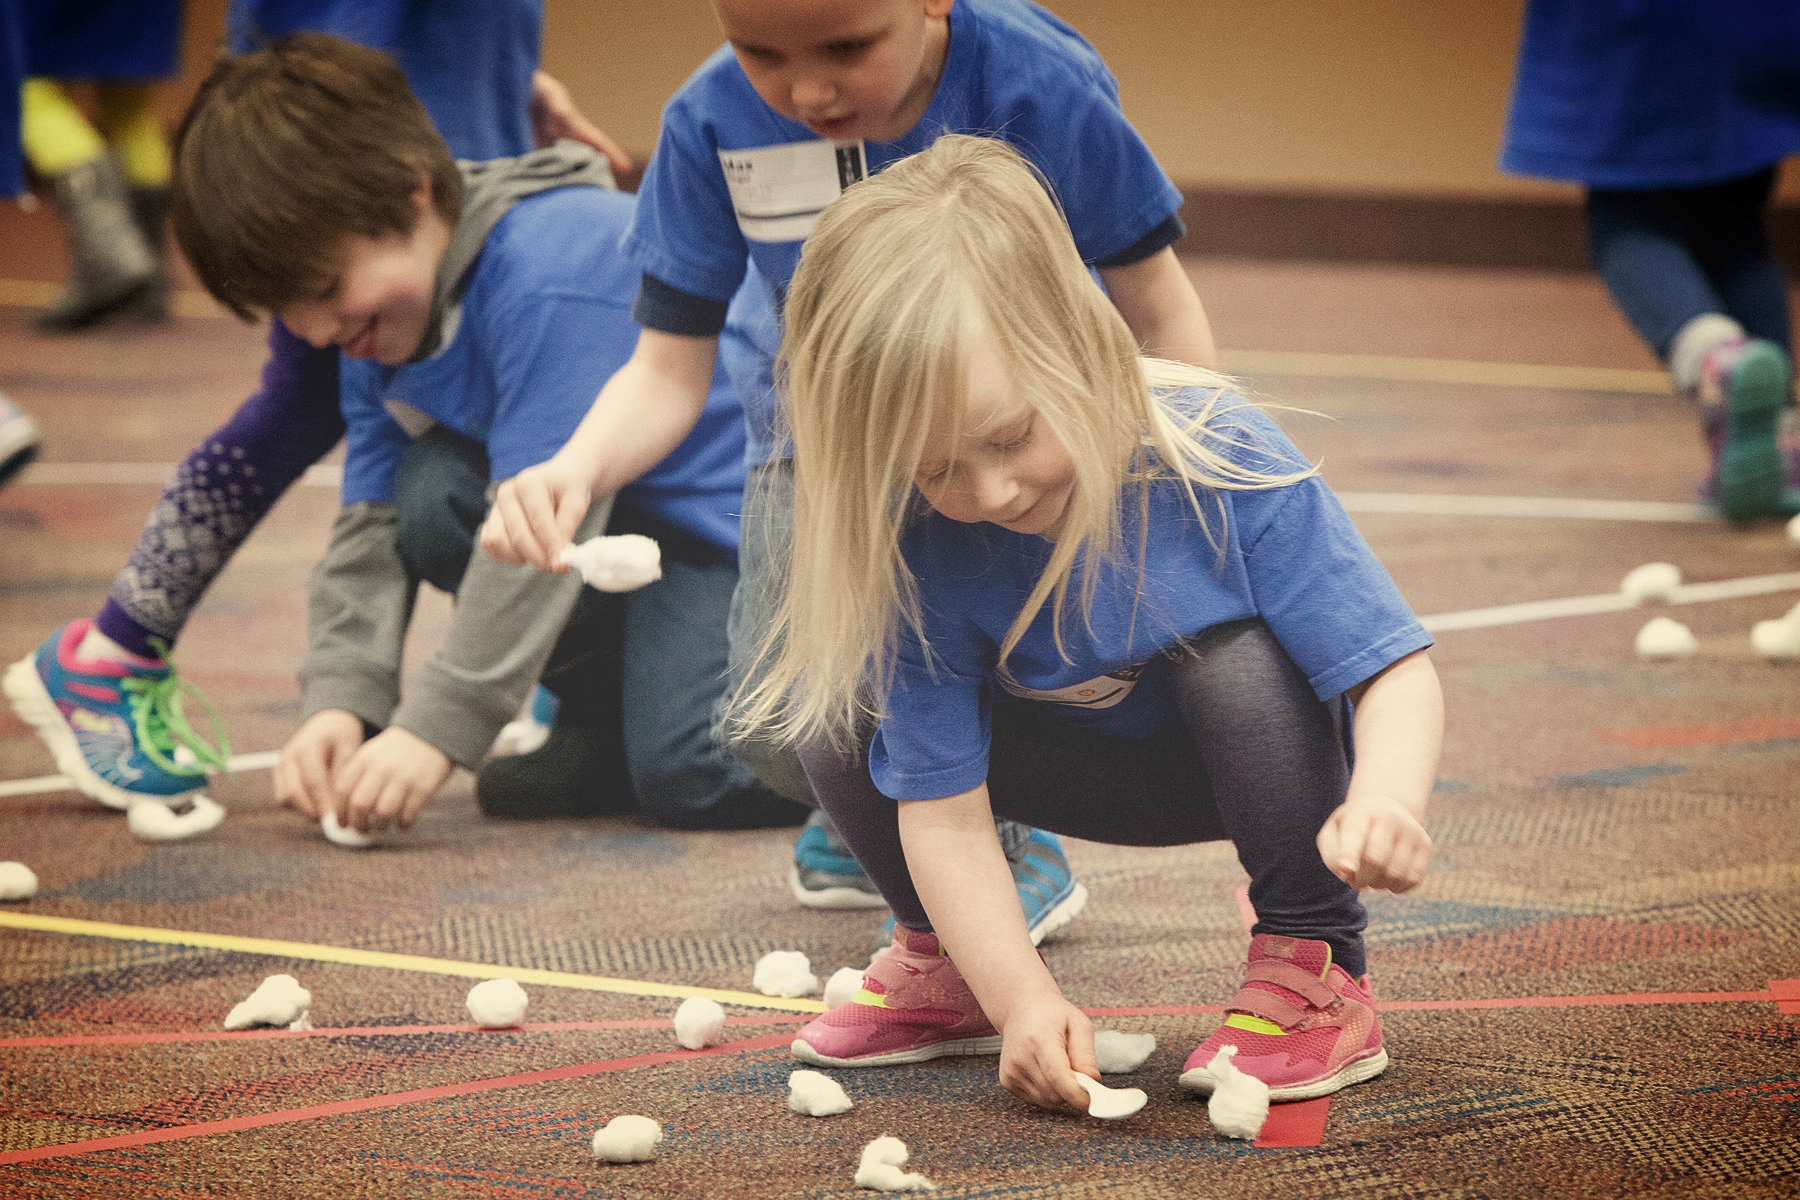 FUNWe bring kid fun to every service and classroom through worship, games, and a friendly environment. Our team is made up of amazing volunteers who feel called to share their time and love of Jesus with your kids. -